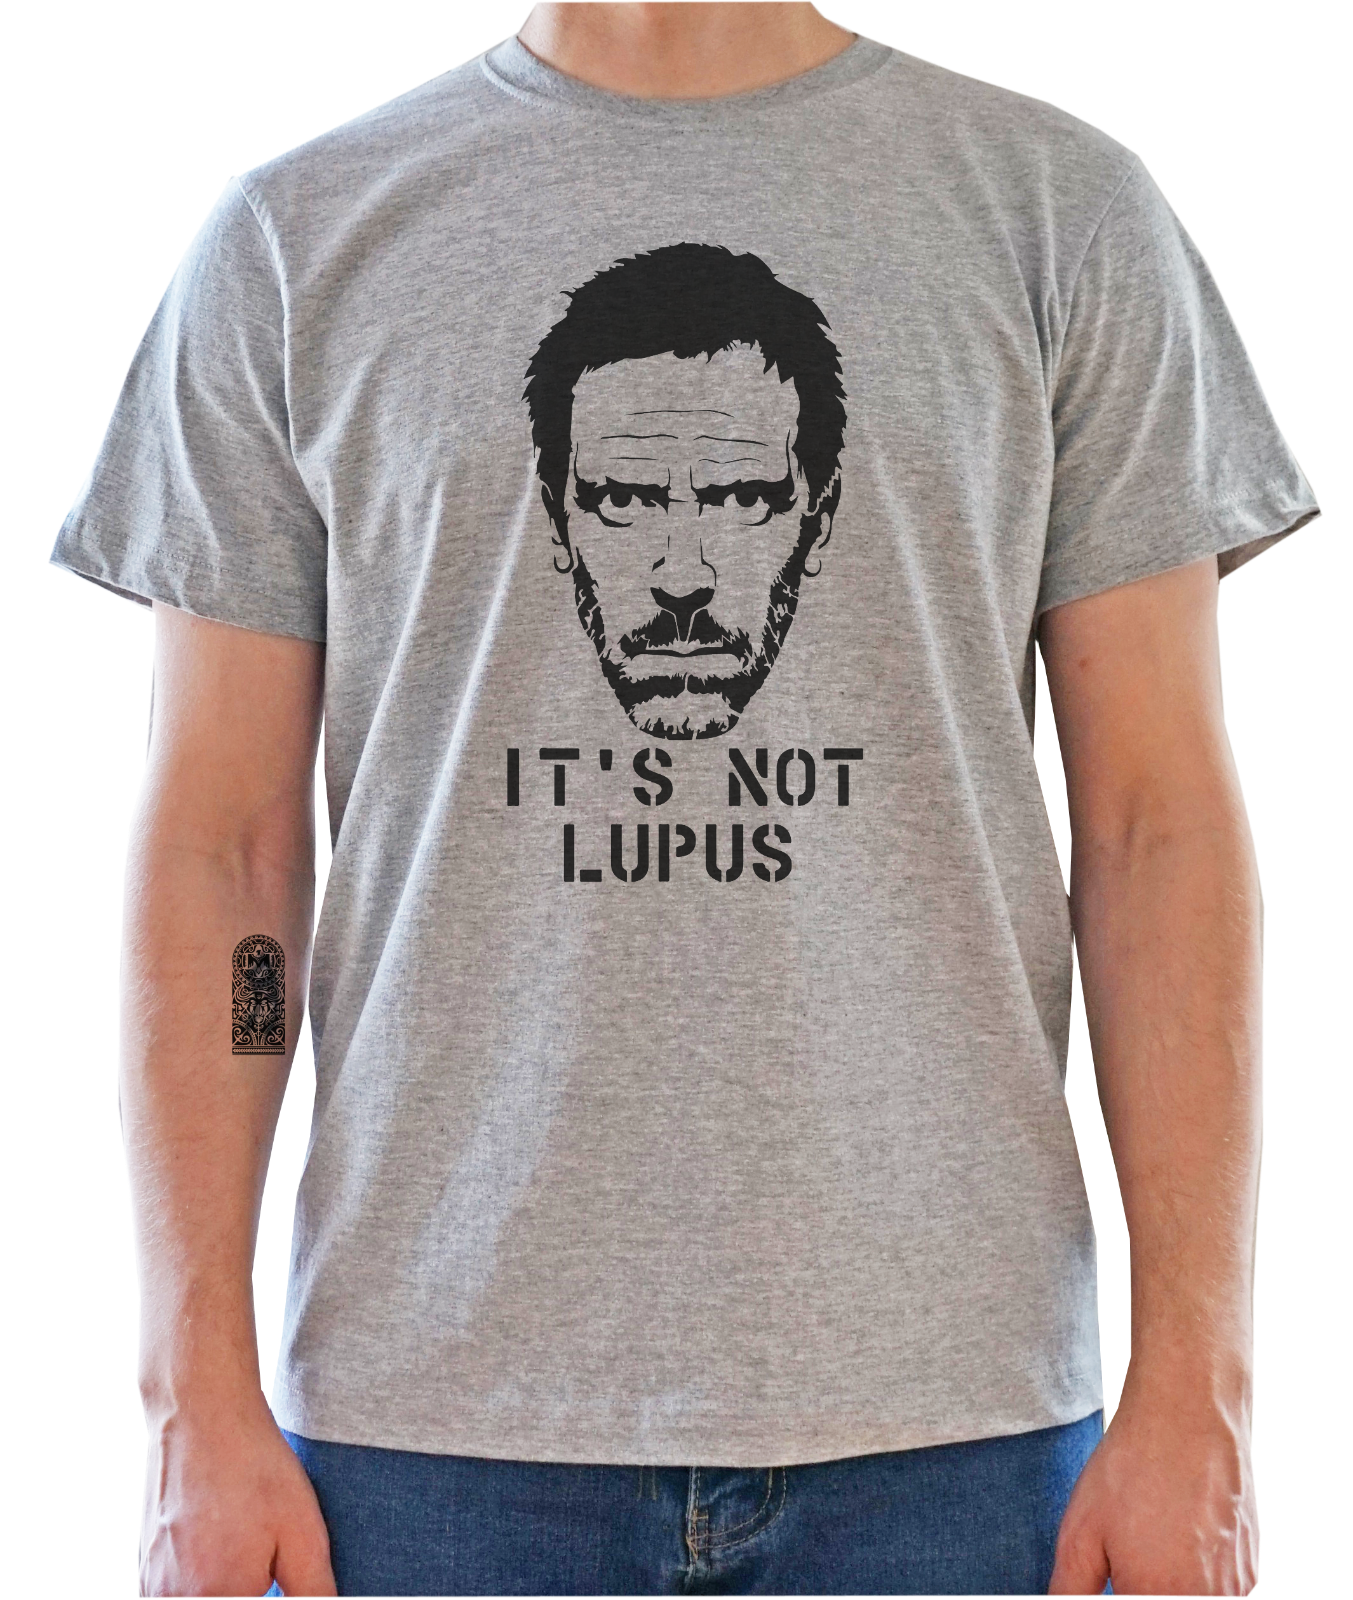 house laurie hugh md tv doctor IT/'S NOT LUPUS shirt